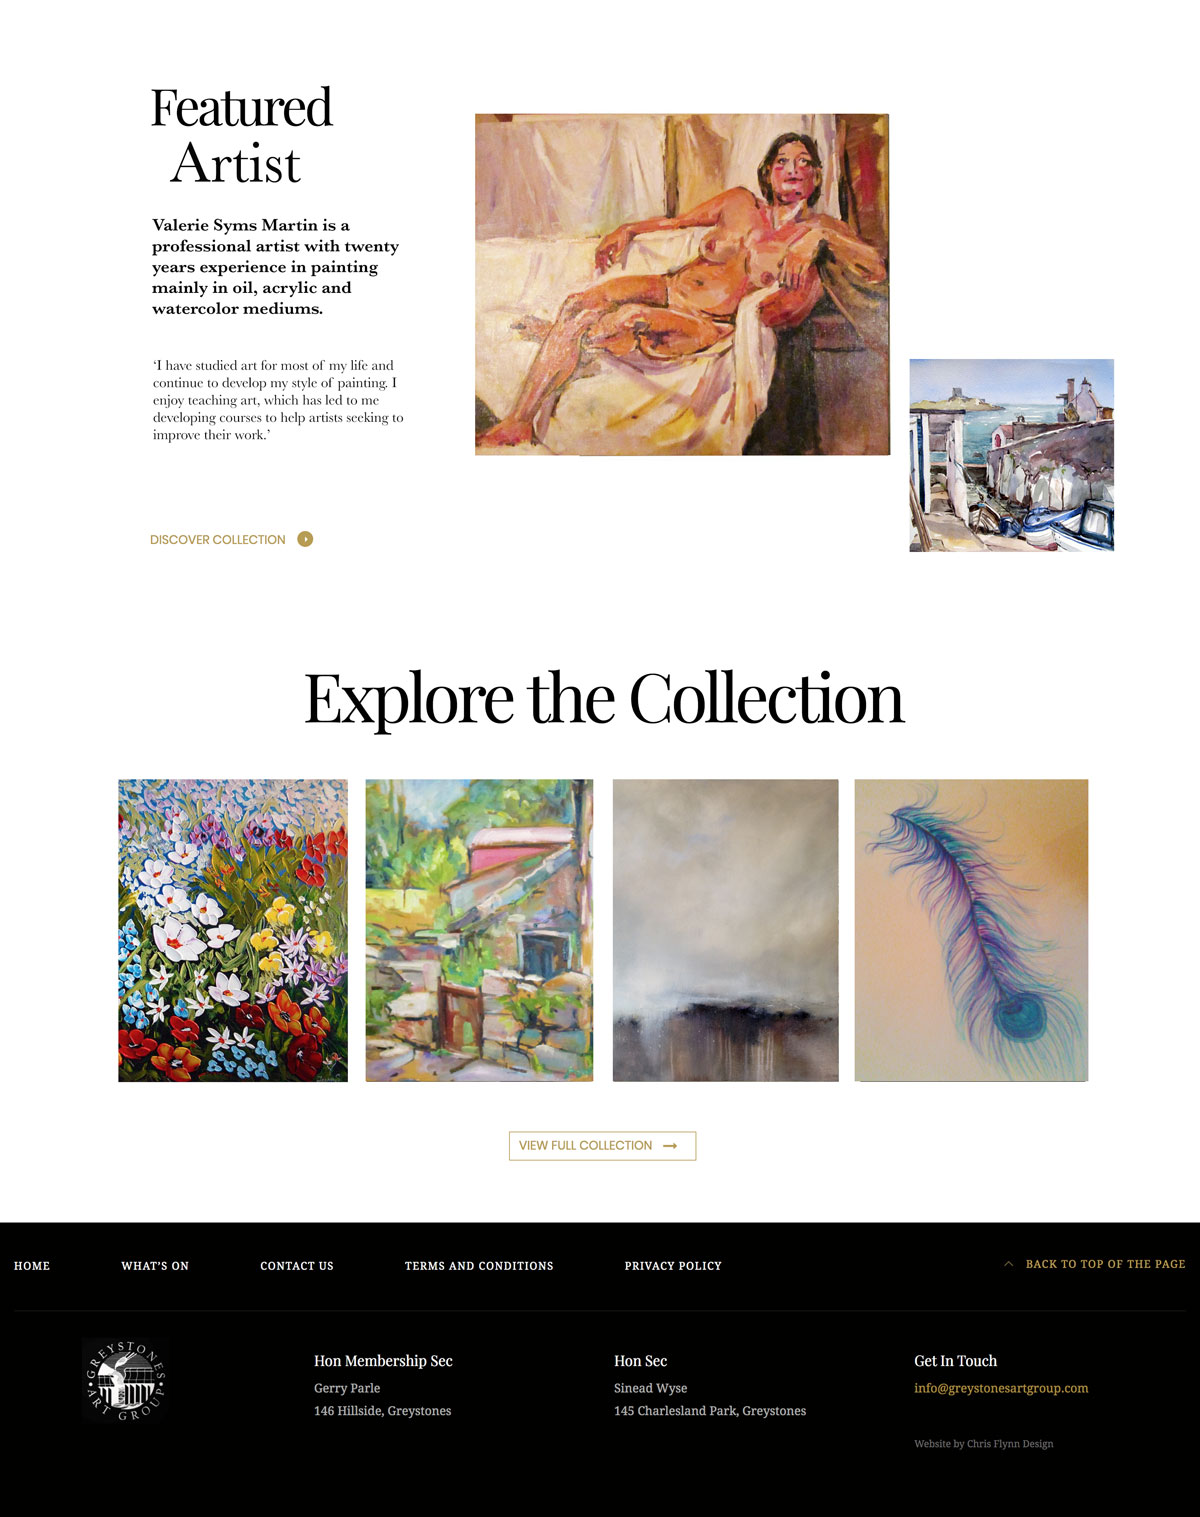 Website Design Proposed Featured Artist Section